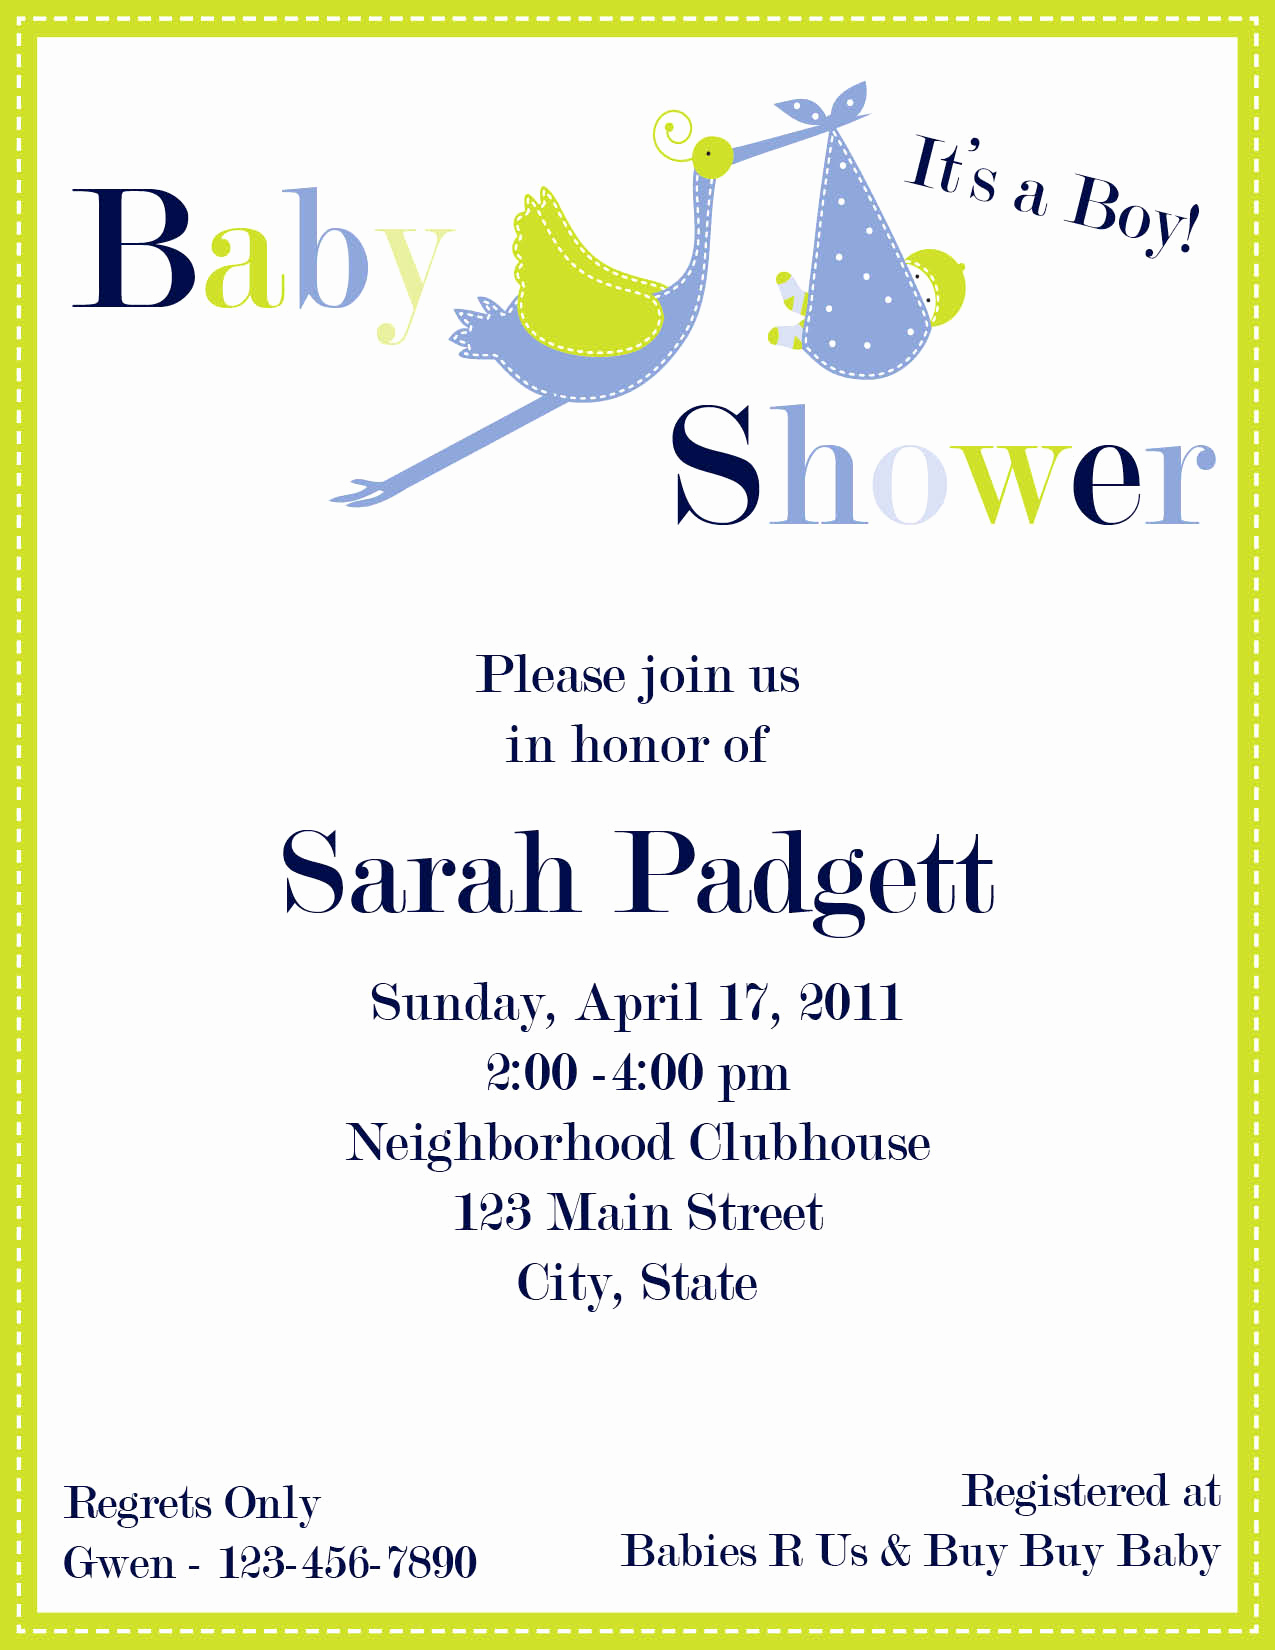 Sample Baby Shower Invitation Best Of Baby Shower Card Messages Sample Baby Shower Invitations